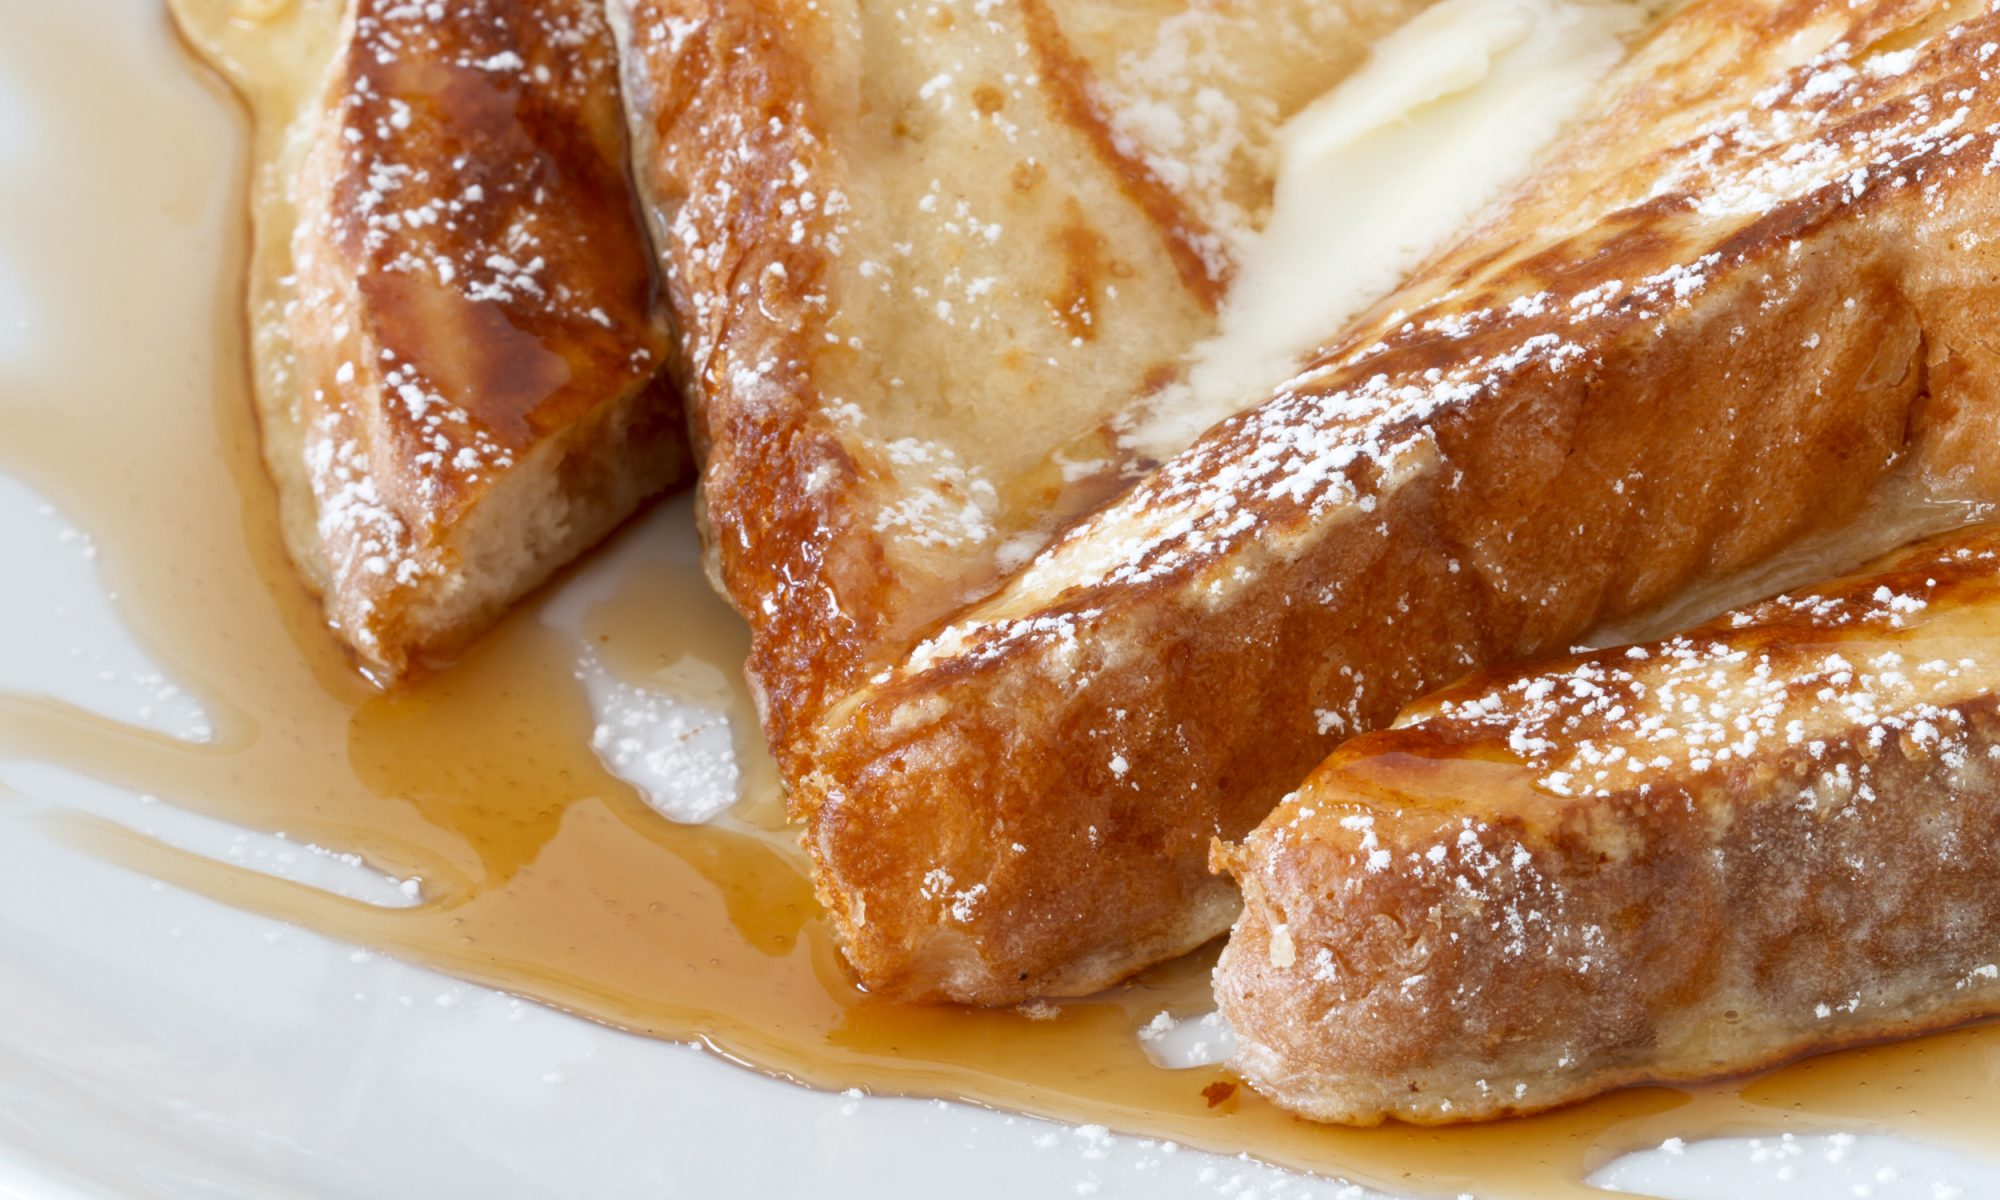 EC: Slow Cooker French Toast Is the Laid Back Way to Feed Your Friends a Fancy Brunch